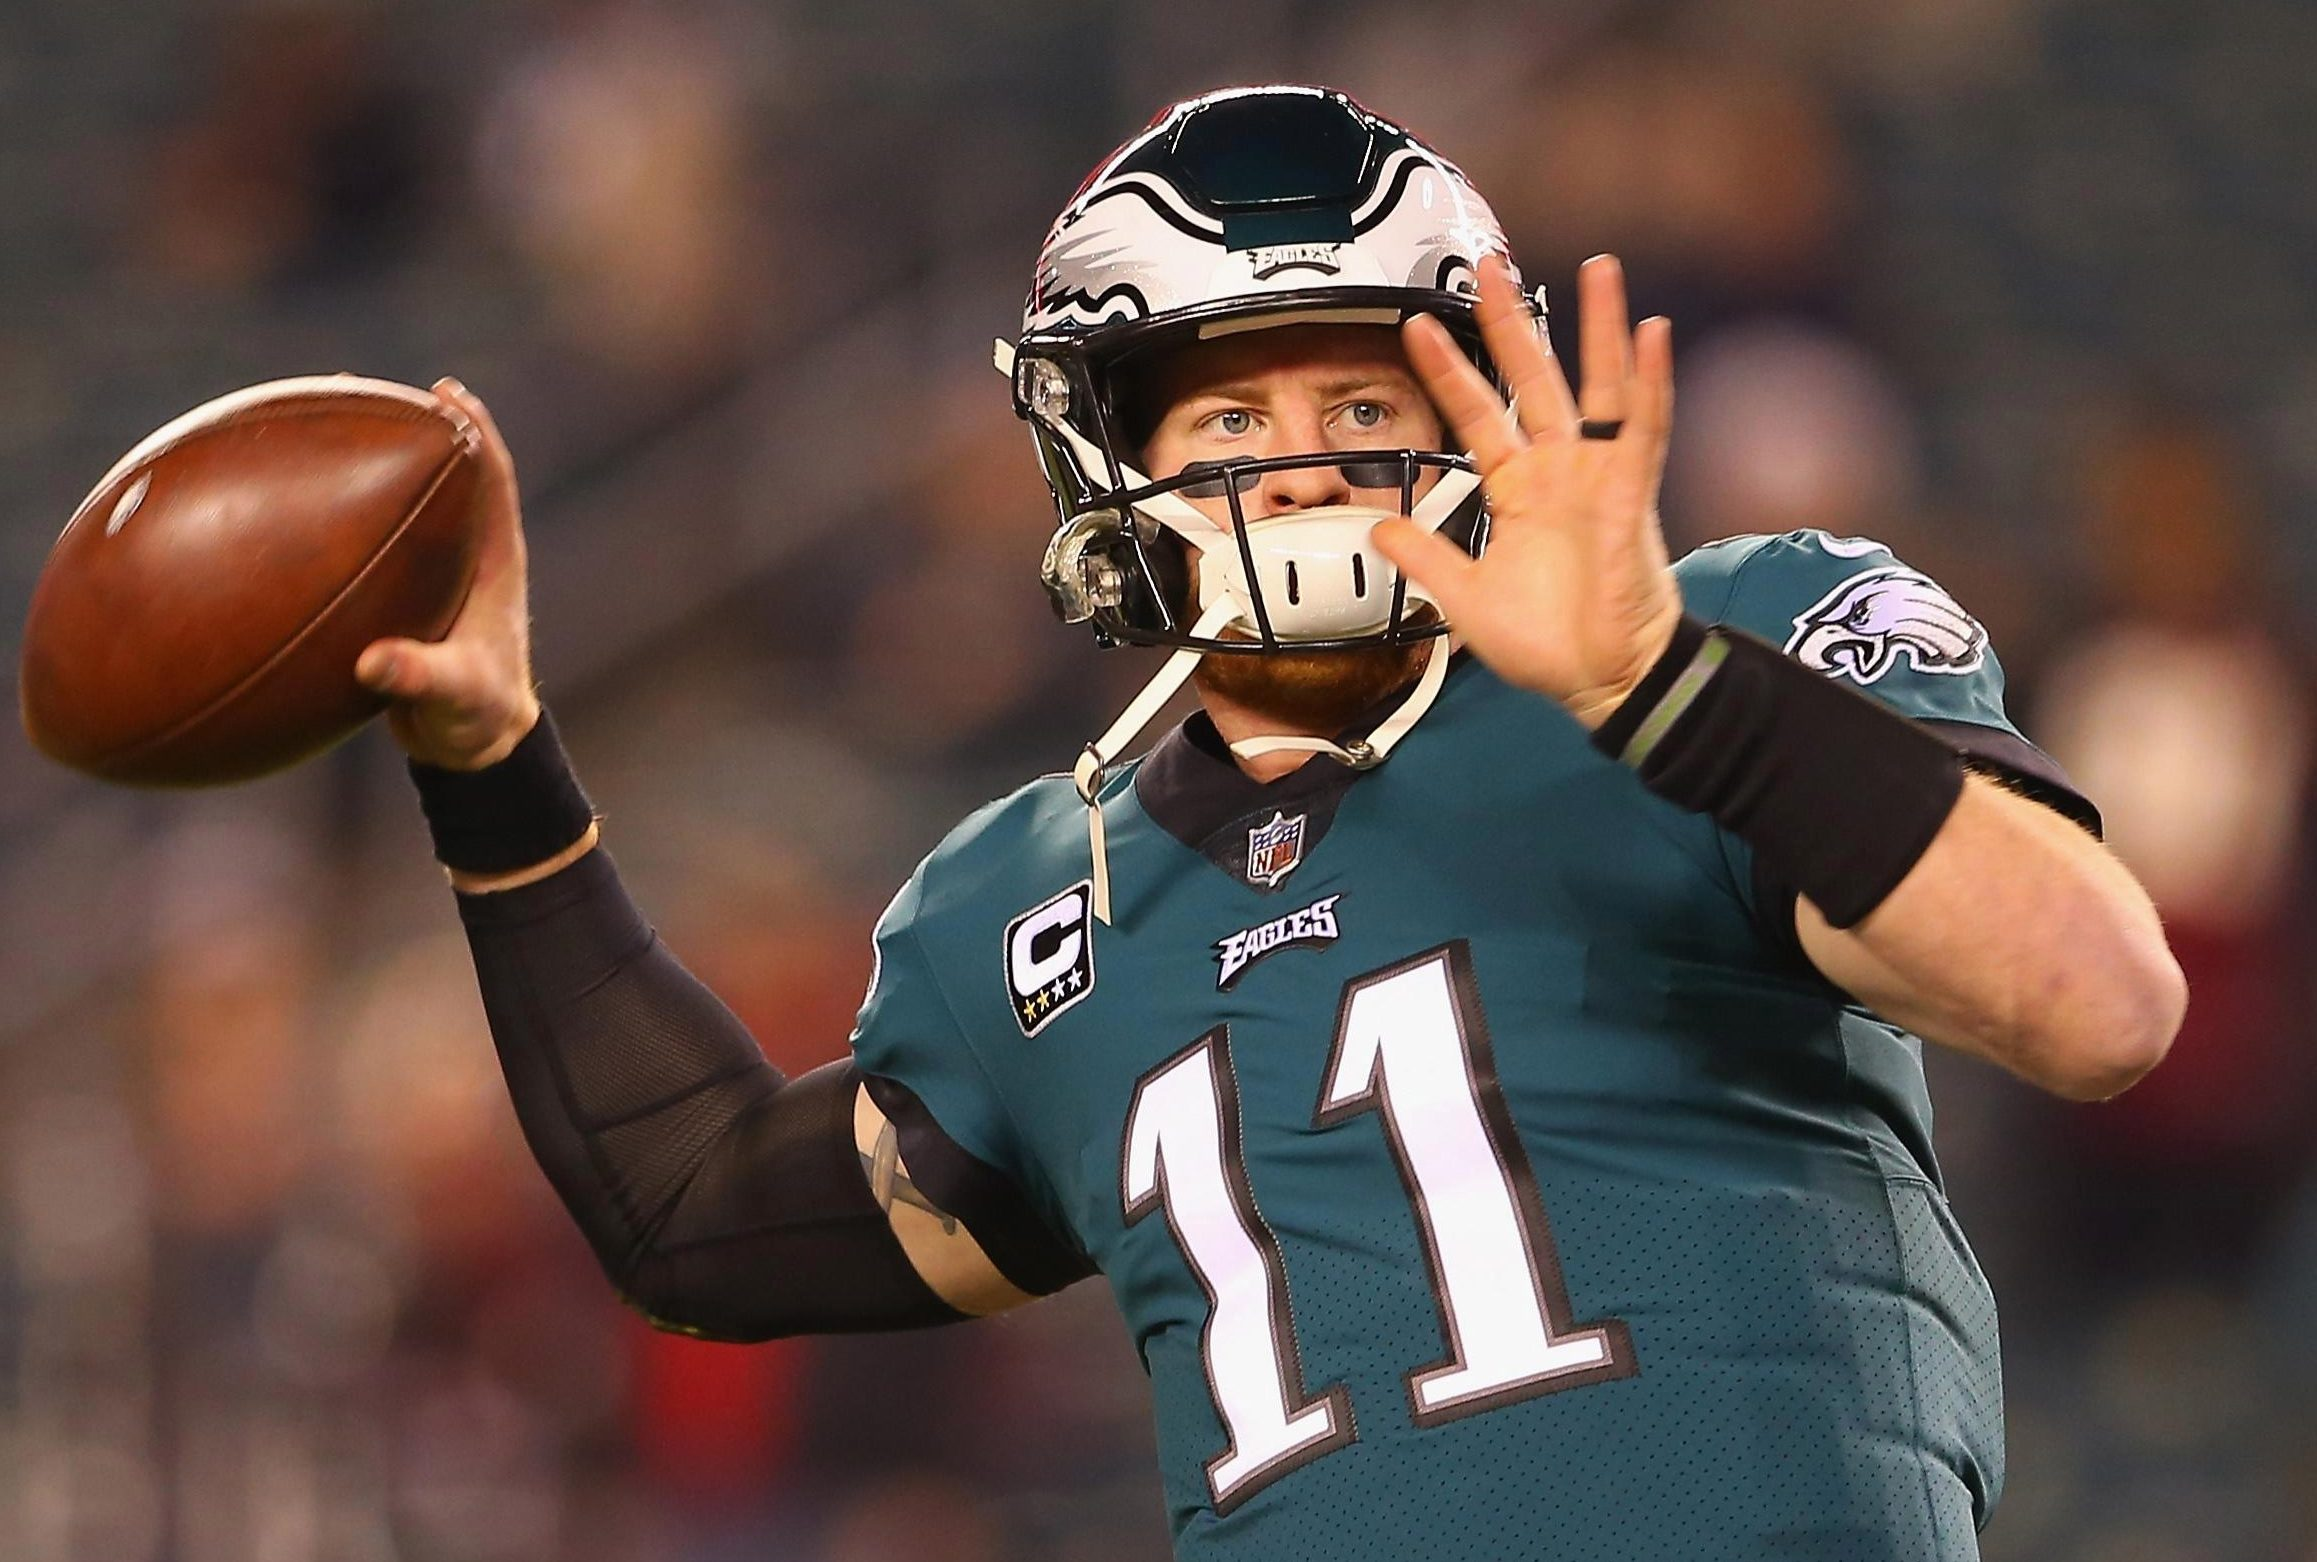 Carson Wentz is back to his best after he missed the Super Bowl last season